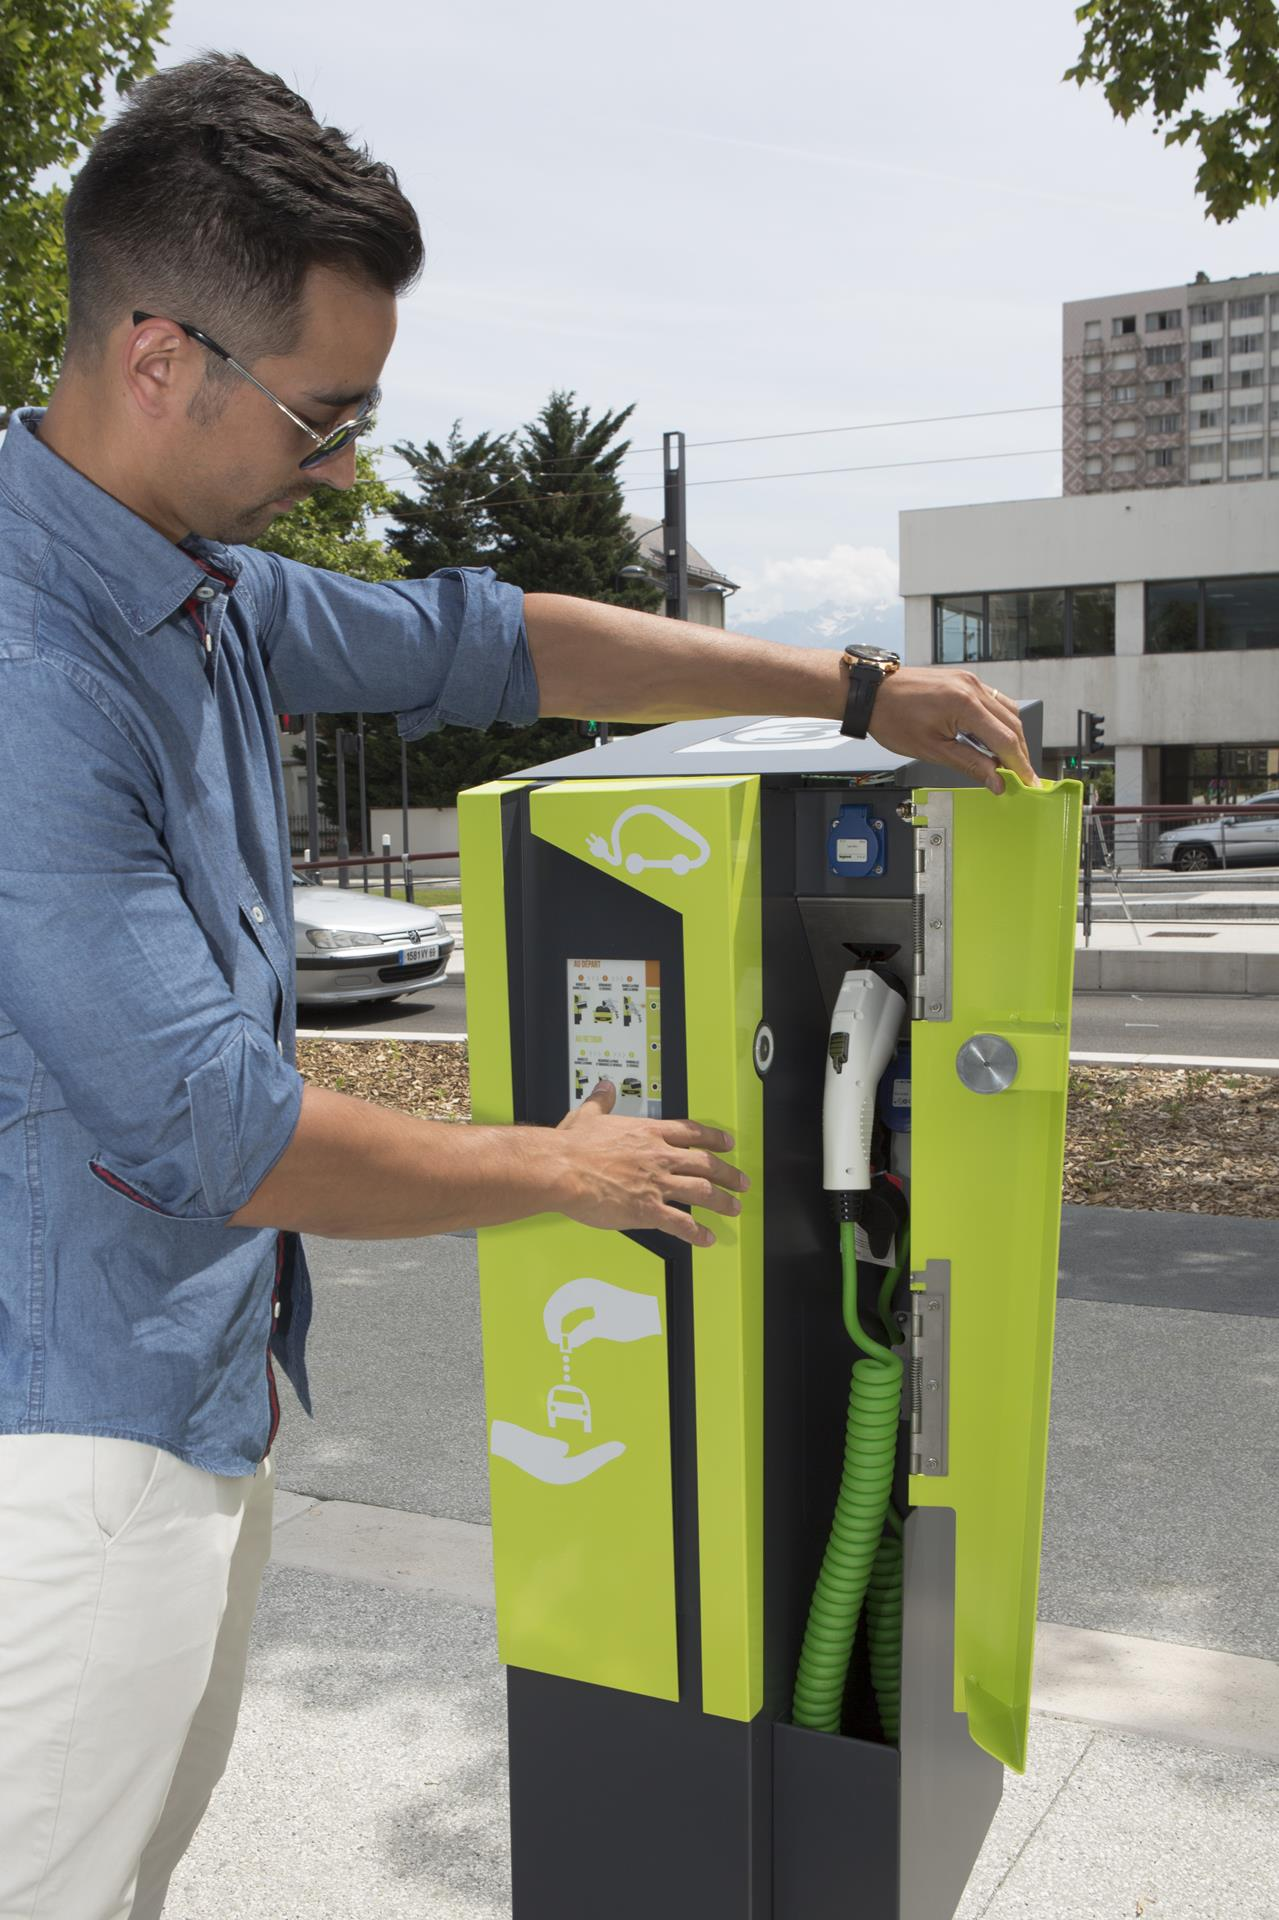 2014 Citélib by Ha:mo charging station